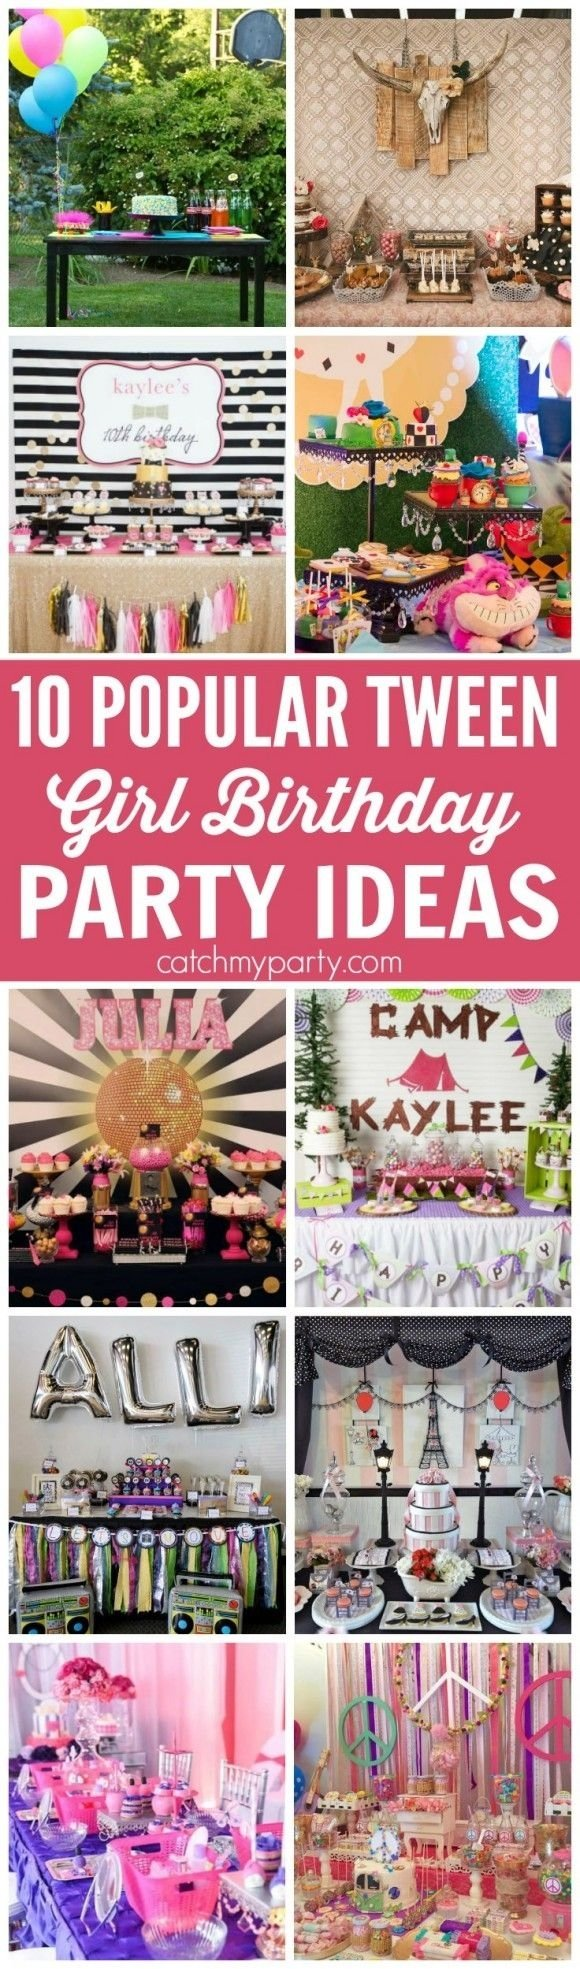 10 Stylish Fun Birthday Ideas For Girls 416 best girl birthday party ideas images on pinterest birthday 8